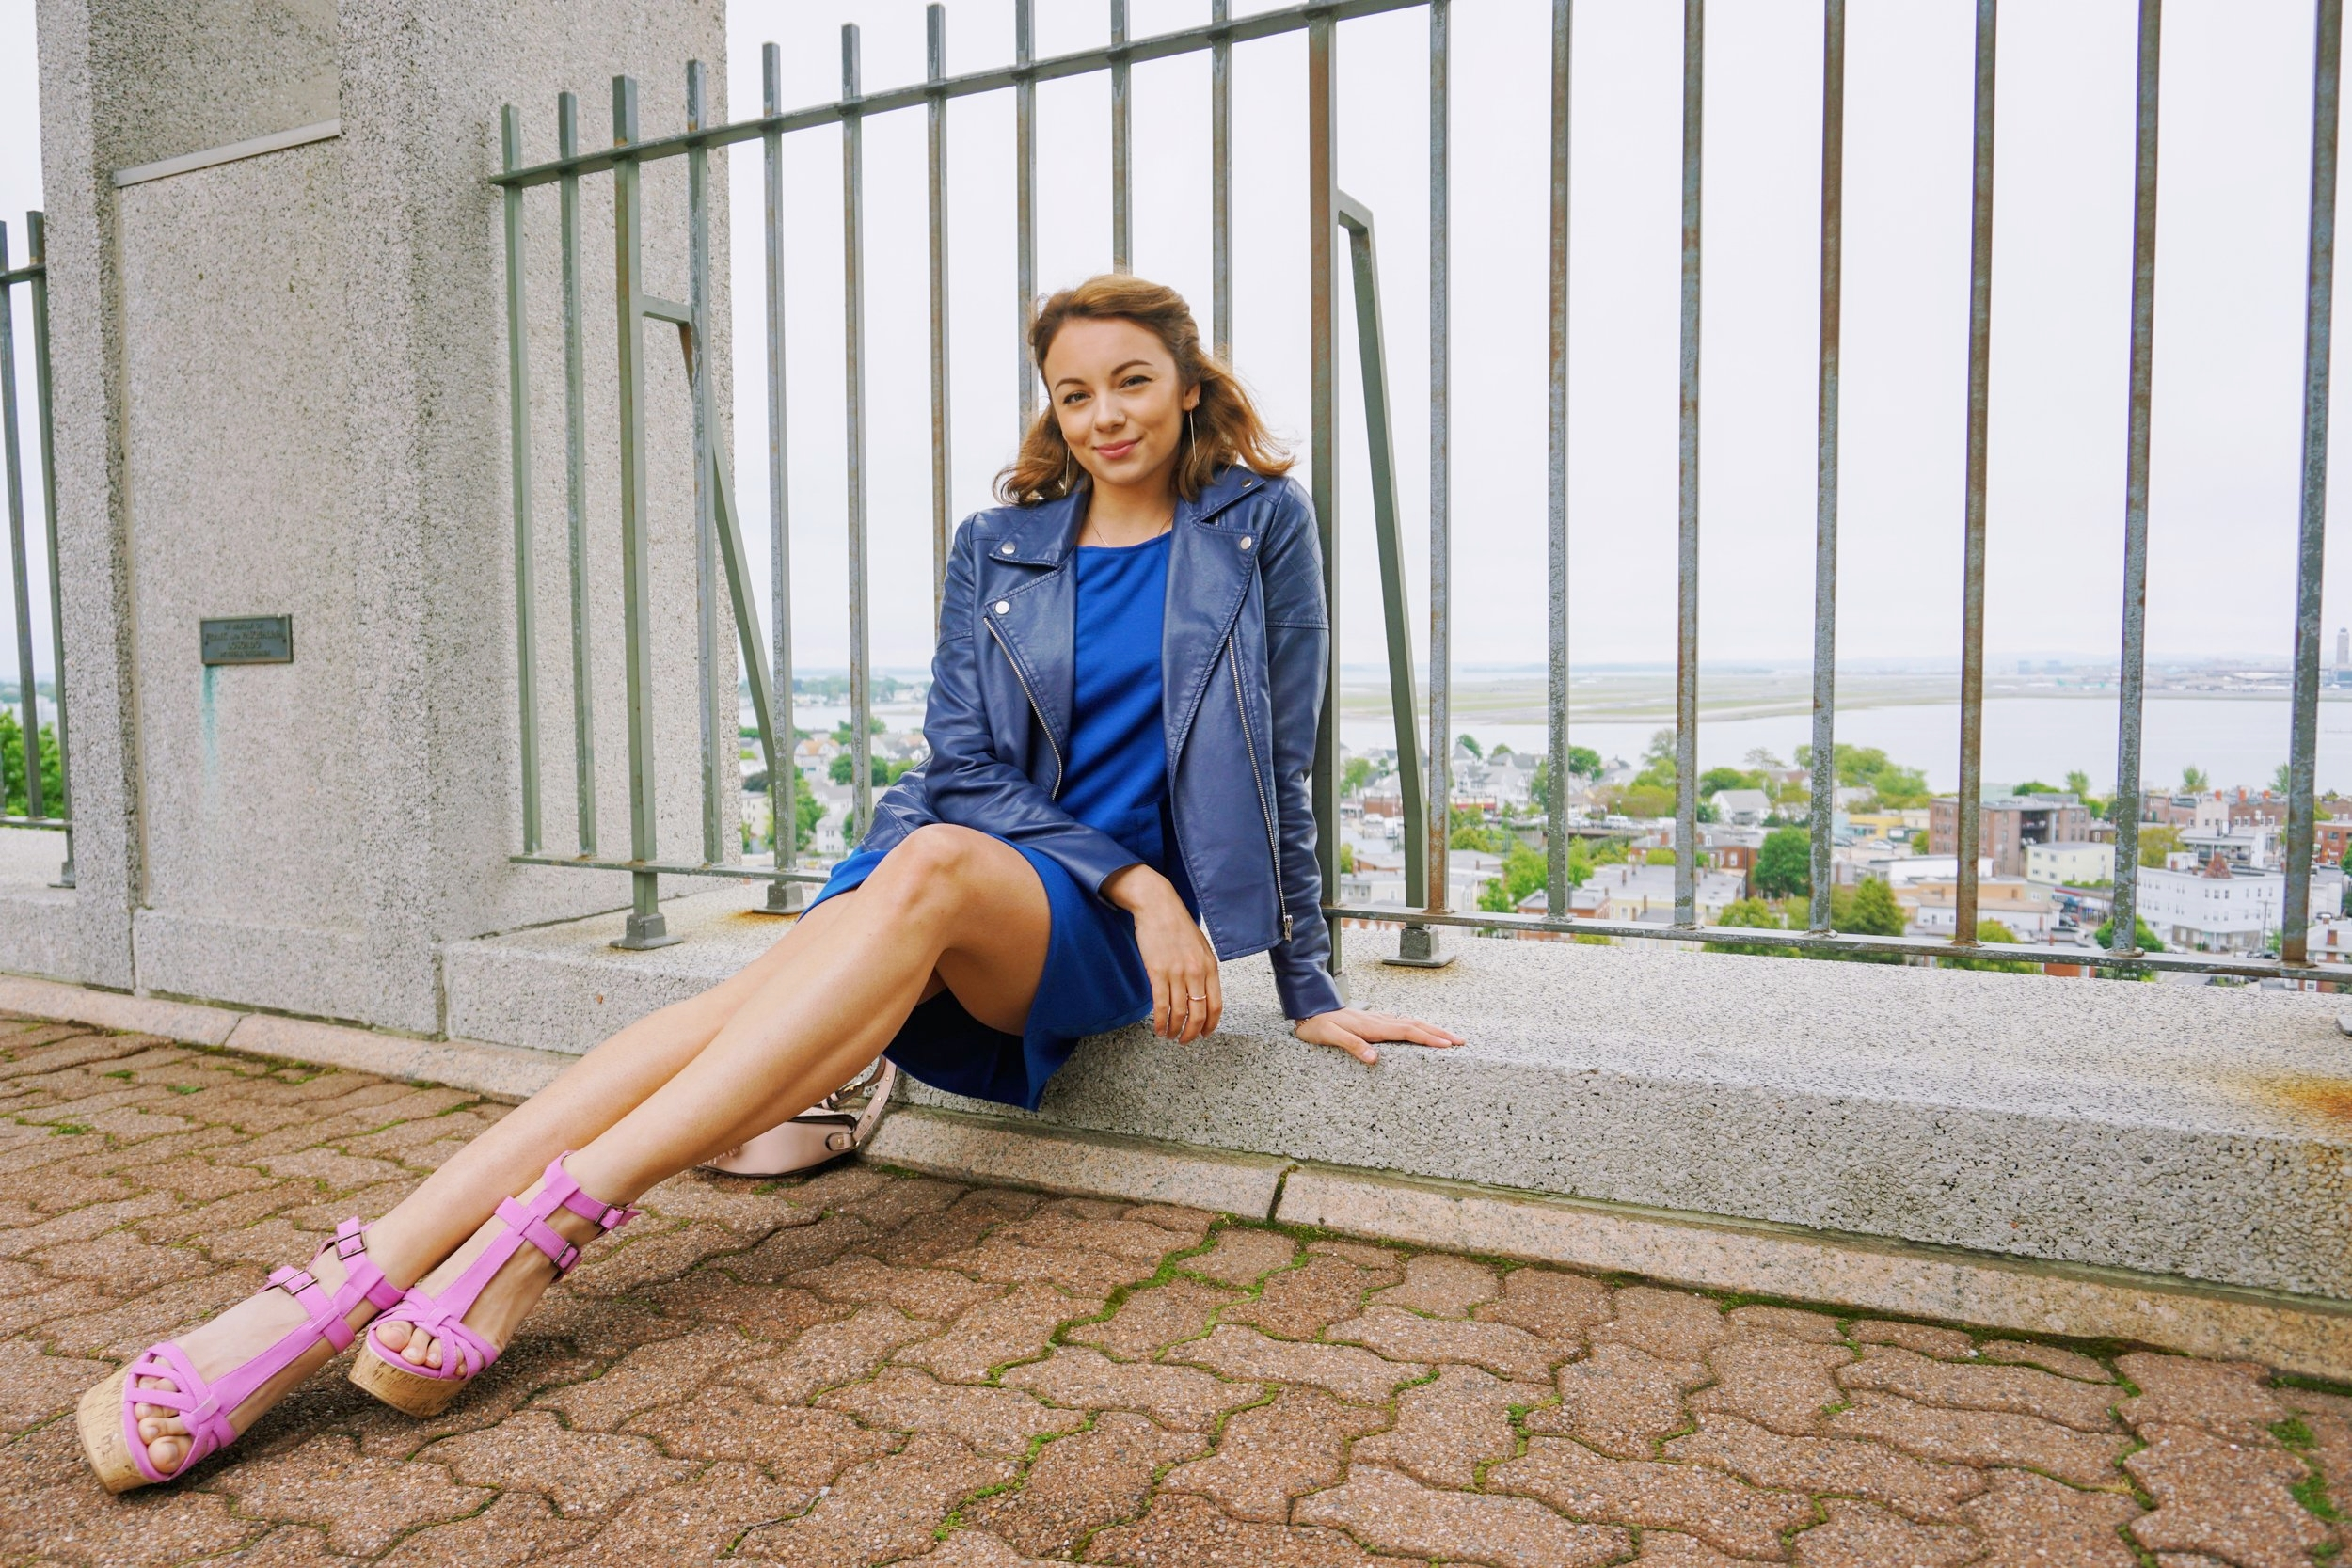 A blogger posing, and wearing blue dress, blue leather jacket, and lavender wedges.